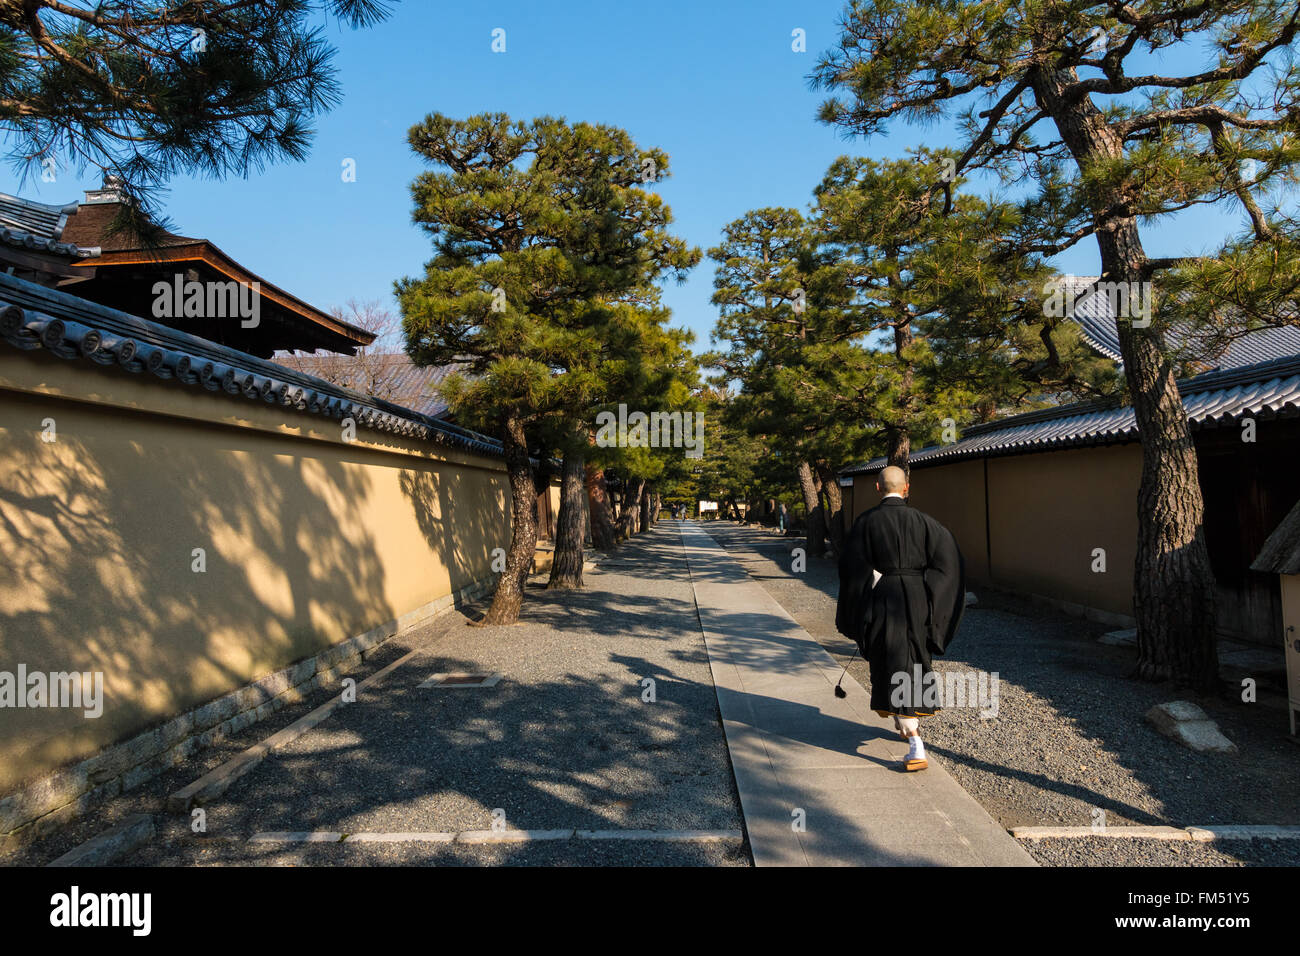 A monk walking down a path between walls in the Daitoku-ji zen buddhist temple in Kyoto - Stock Image